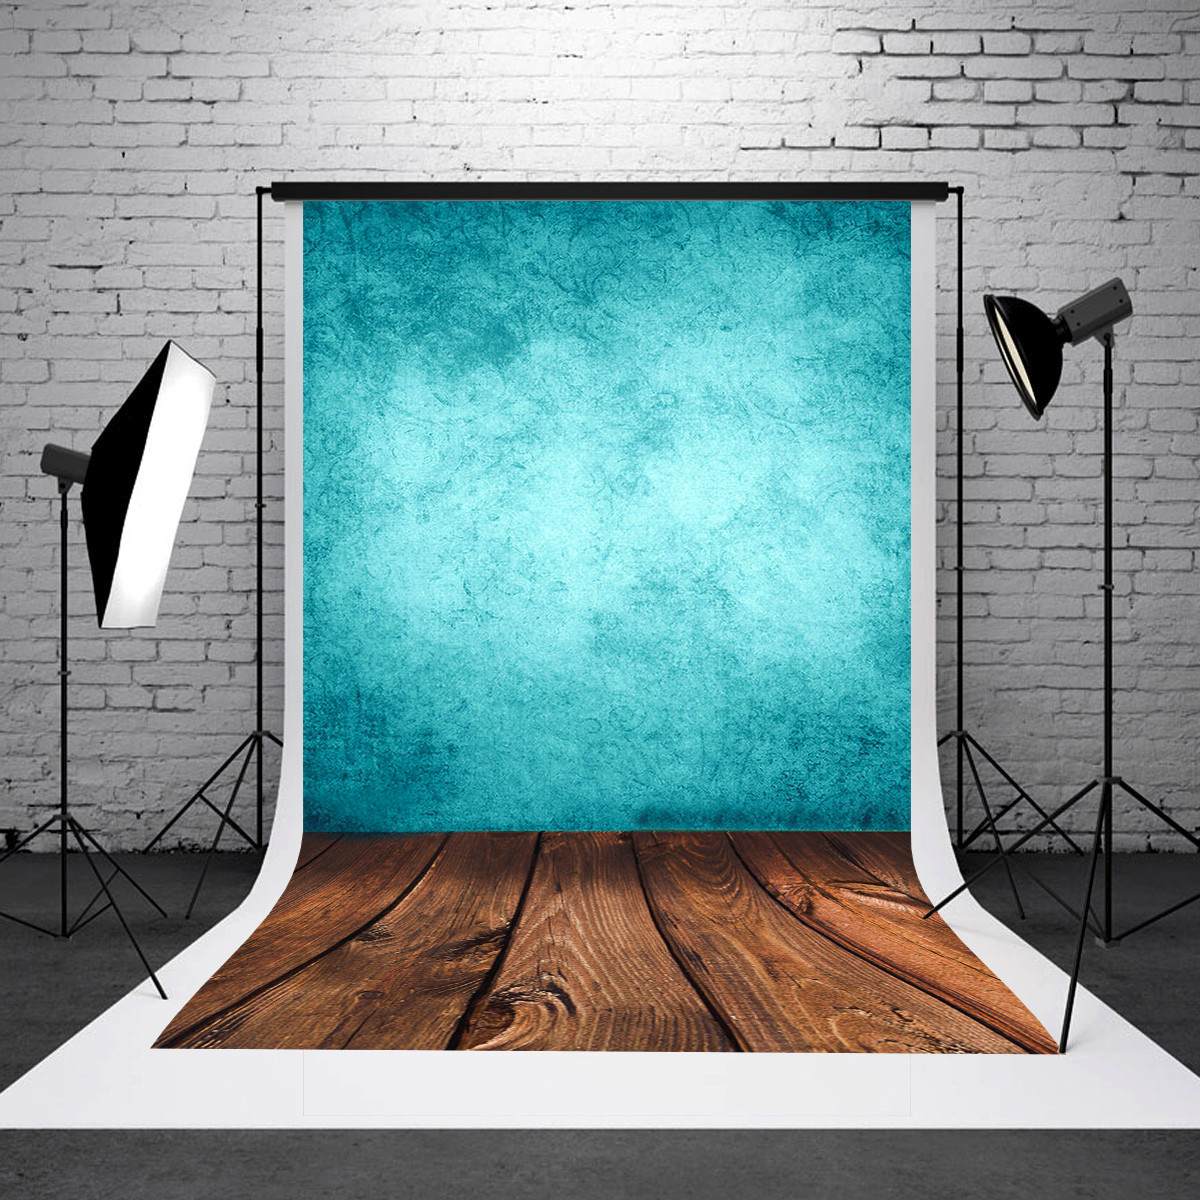 3ftX5ft (90X150CM) Wedding Party Christmas Valentine Photography Background Booth Ceremony Screen Backdrops Studio Photo Video Props Gift